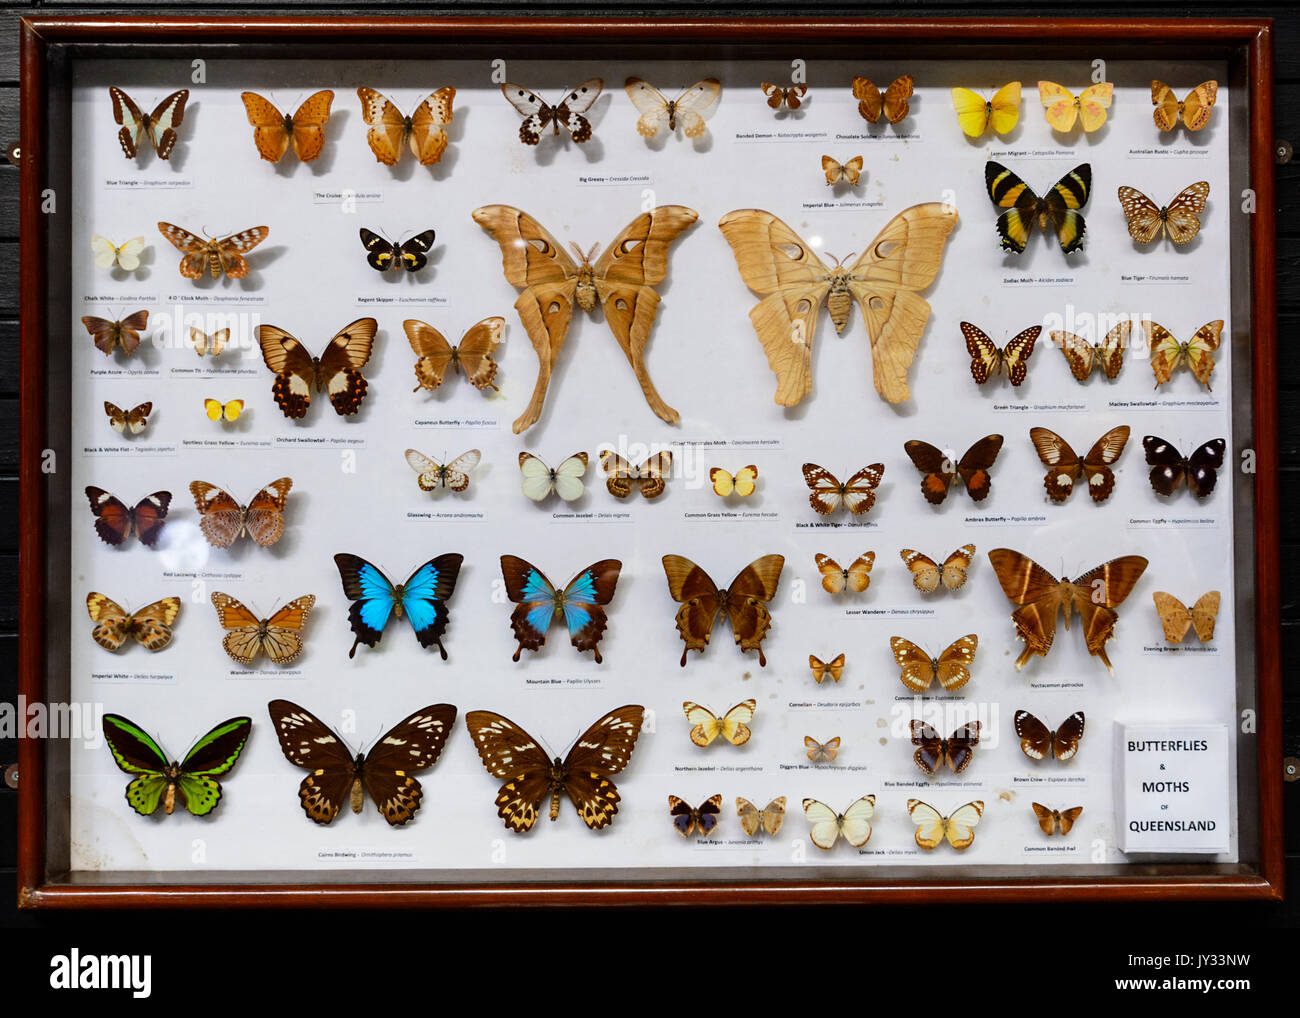 A collection of pinned Australian Butterflies and Moths from Queensland, Daintree Discovery Centre, Cape Tribulation, Far North Queensland, FNQ, QLD,  - Stock Image